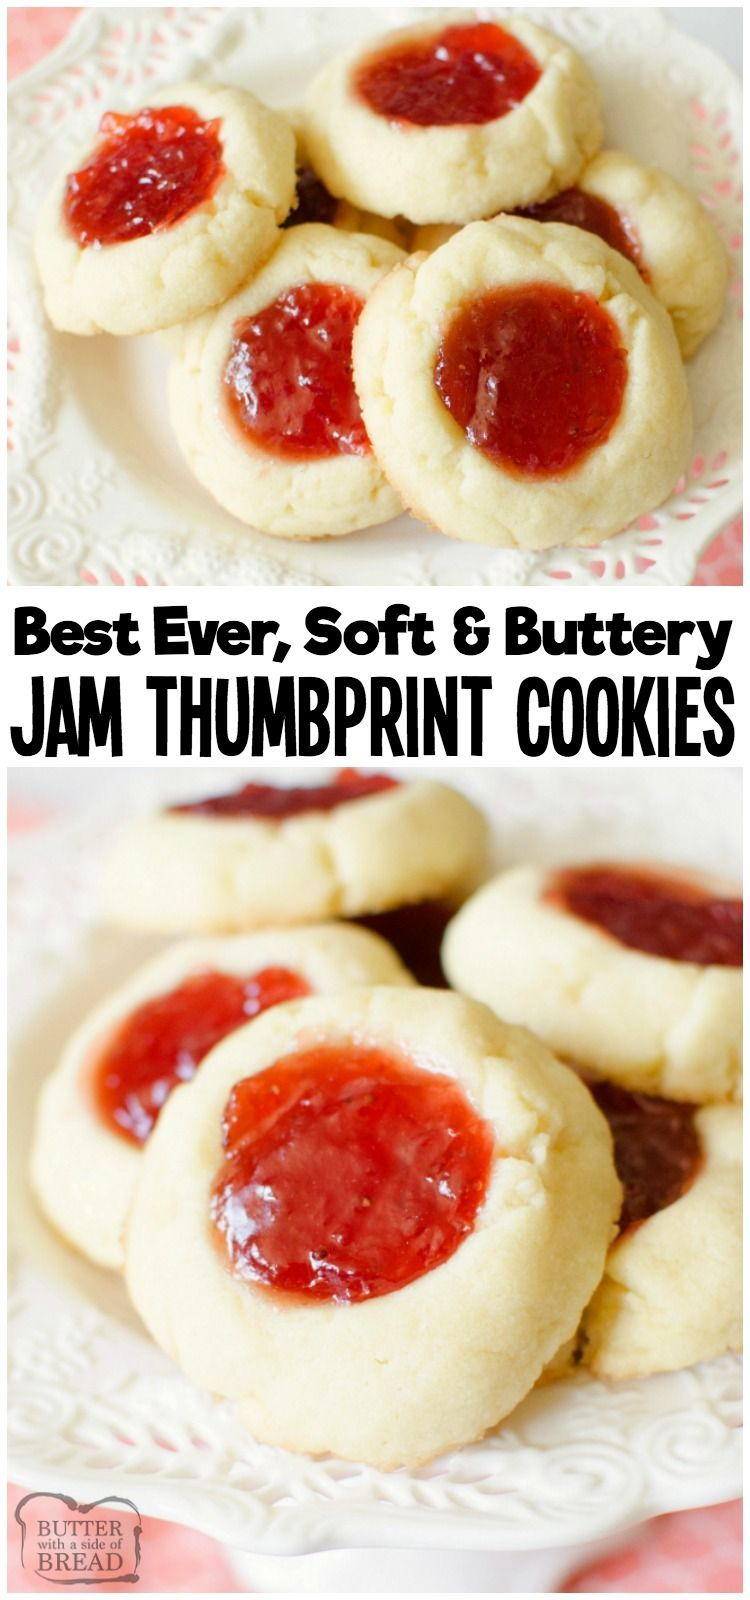 Easy recipe for Soft Jam Thumbprint Cookies perfect for the holidays! Buttery cookies with great flavor, filled with your favorite sweet jam. Perfect for Christmas cookie exchanges! from BUTTER WITH A SIDE OF BREAD